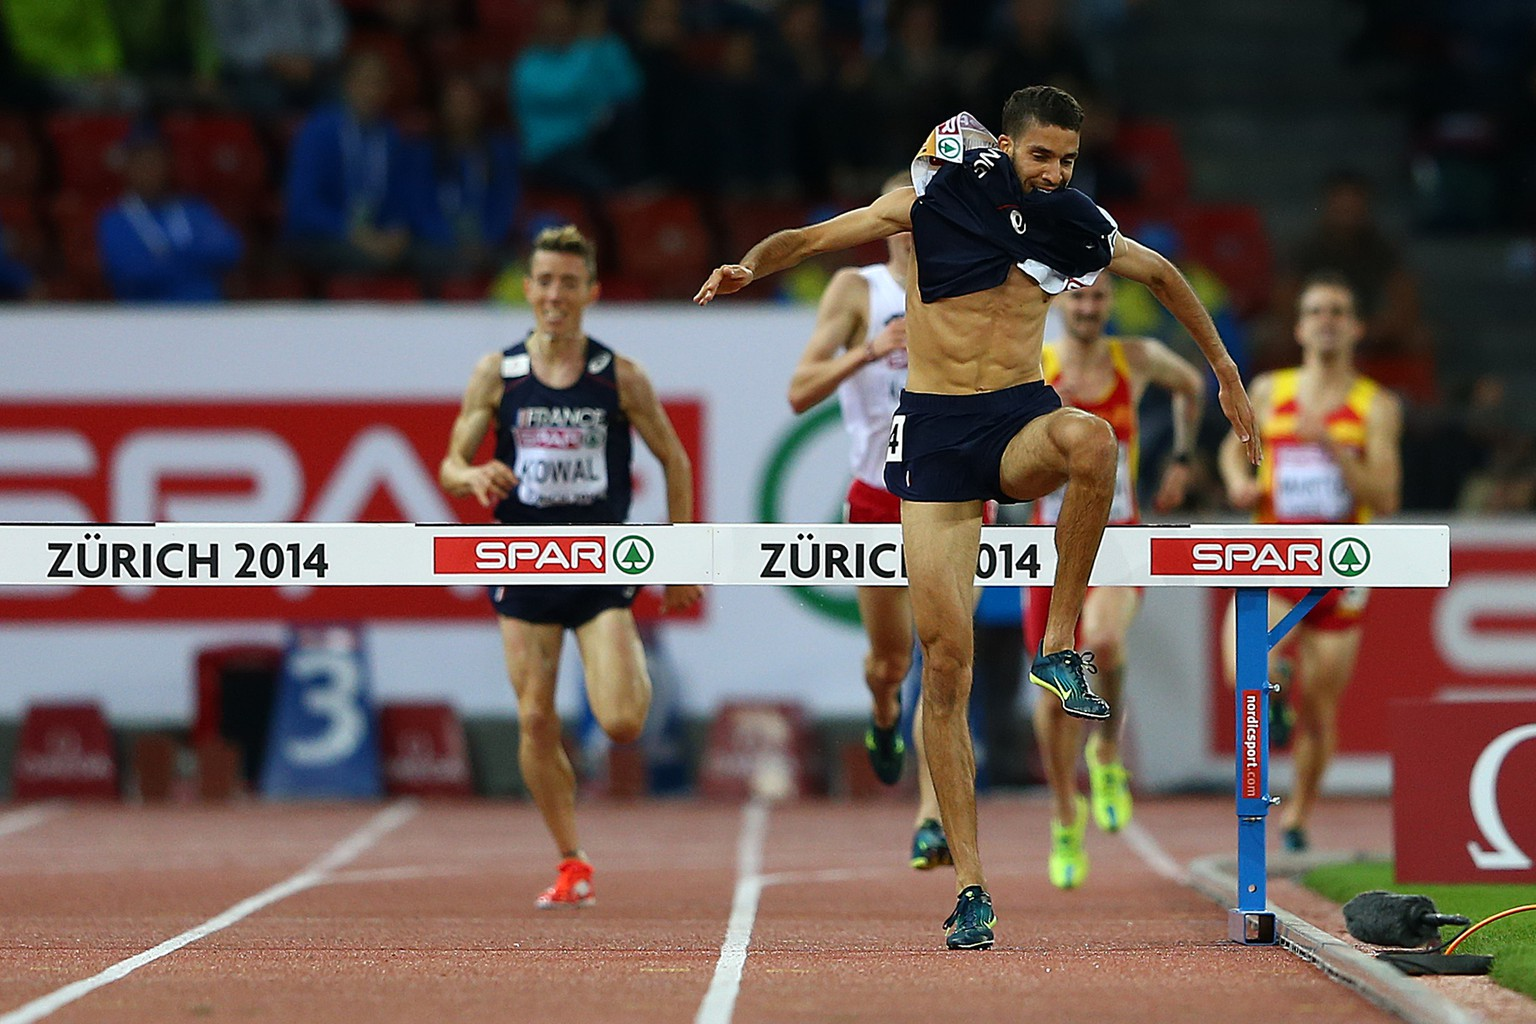 ZURICH, SWITZERLAND - AUGUST 14:  Mahiedine Mekhissi-Benabbad of France takes his vest off as he clears the last jump on his approach to the finish line to claim gold in the Men's 3000 metres Steeplechase final during day three of the 22nd European Athletics Championships at Stadium Letzigrund on August 14, 2014 in Zurich, Switzerland.  (Photo by Michael Steele/Getty Images)